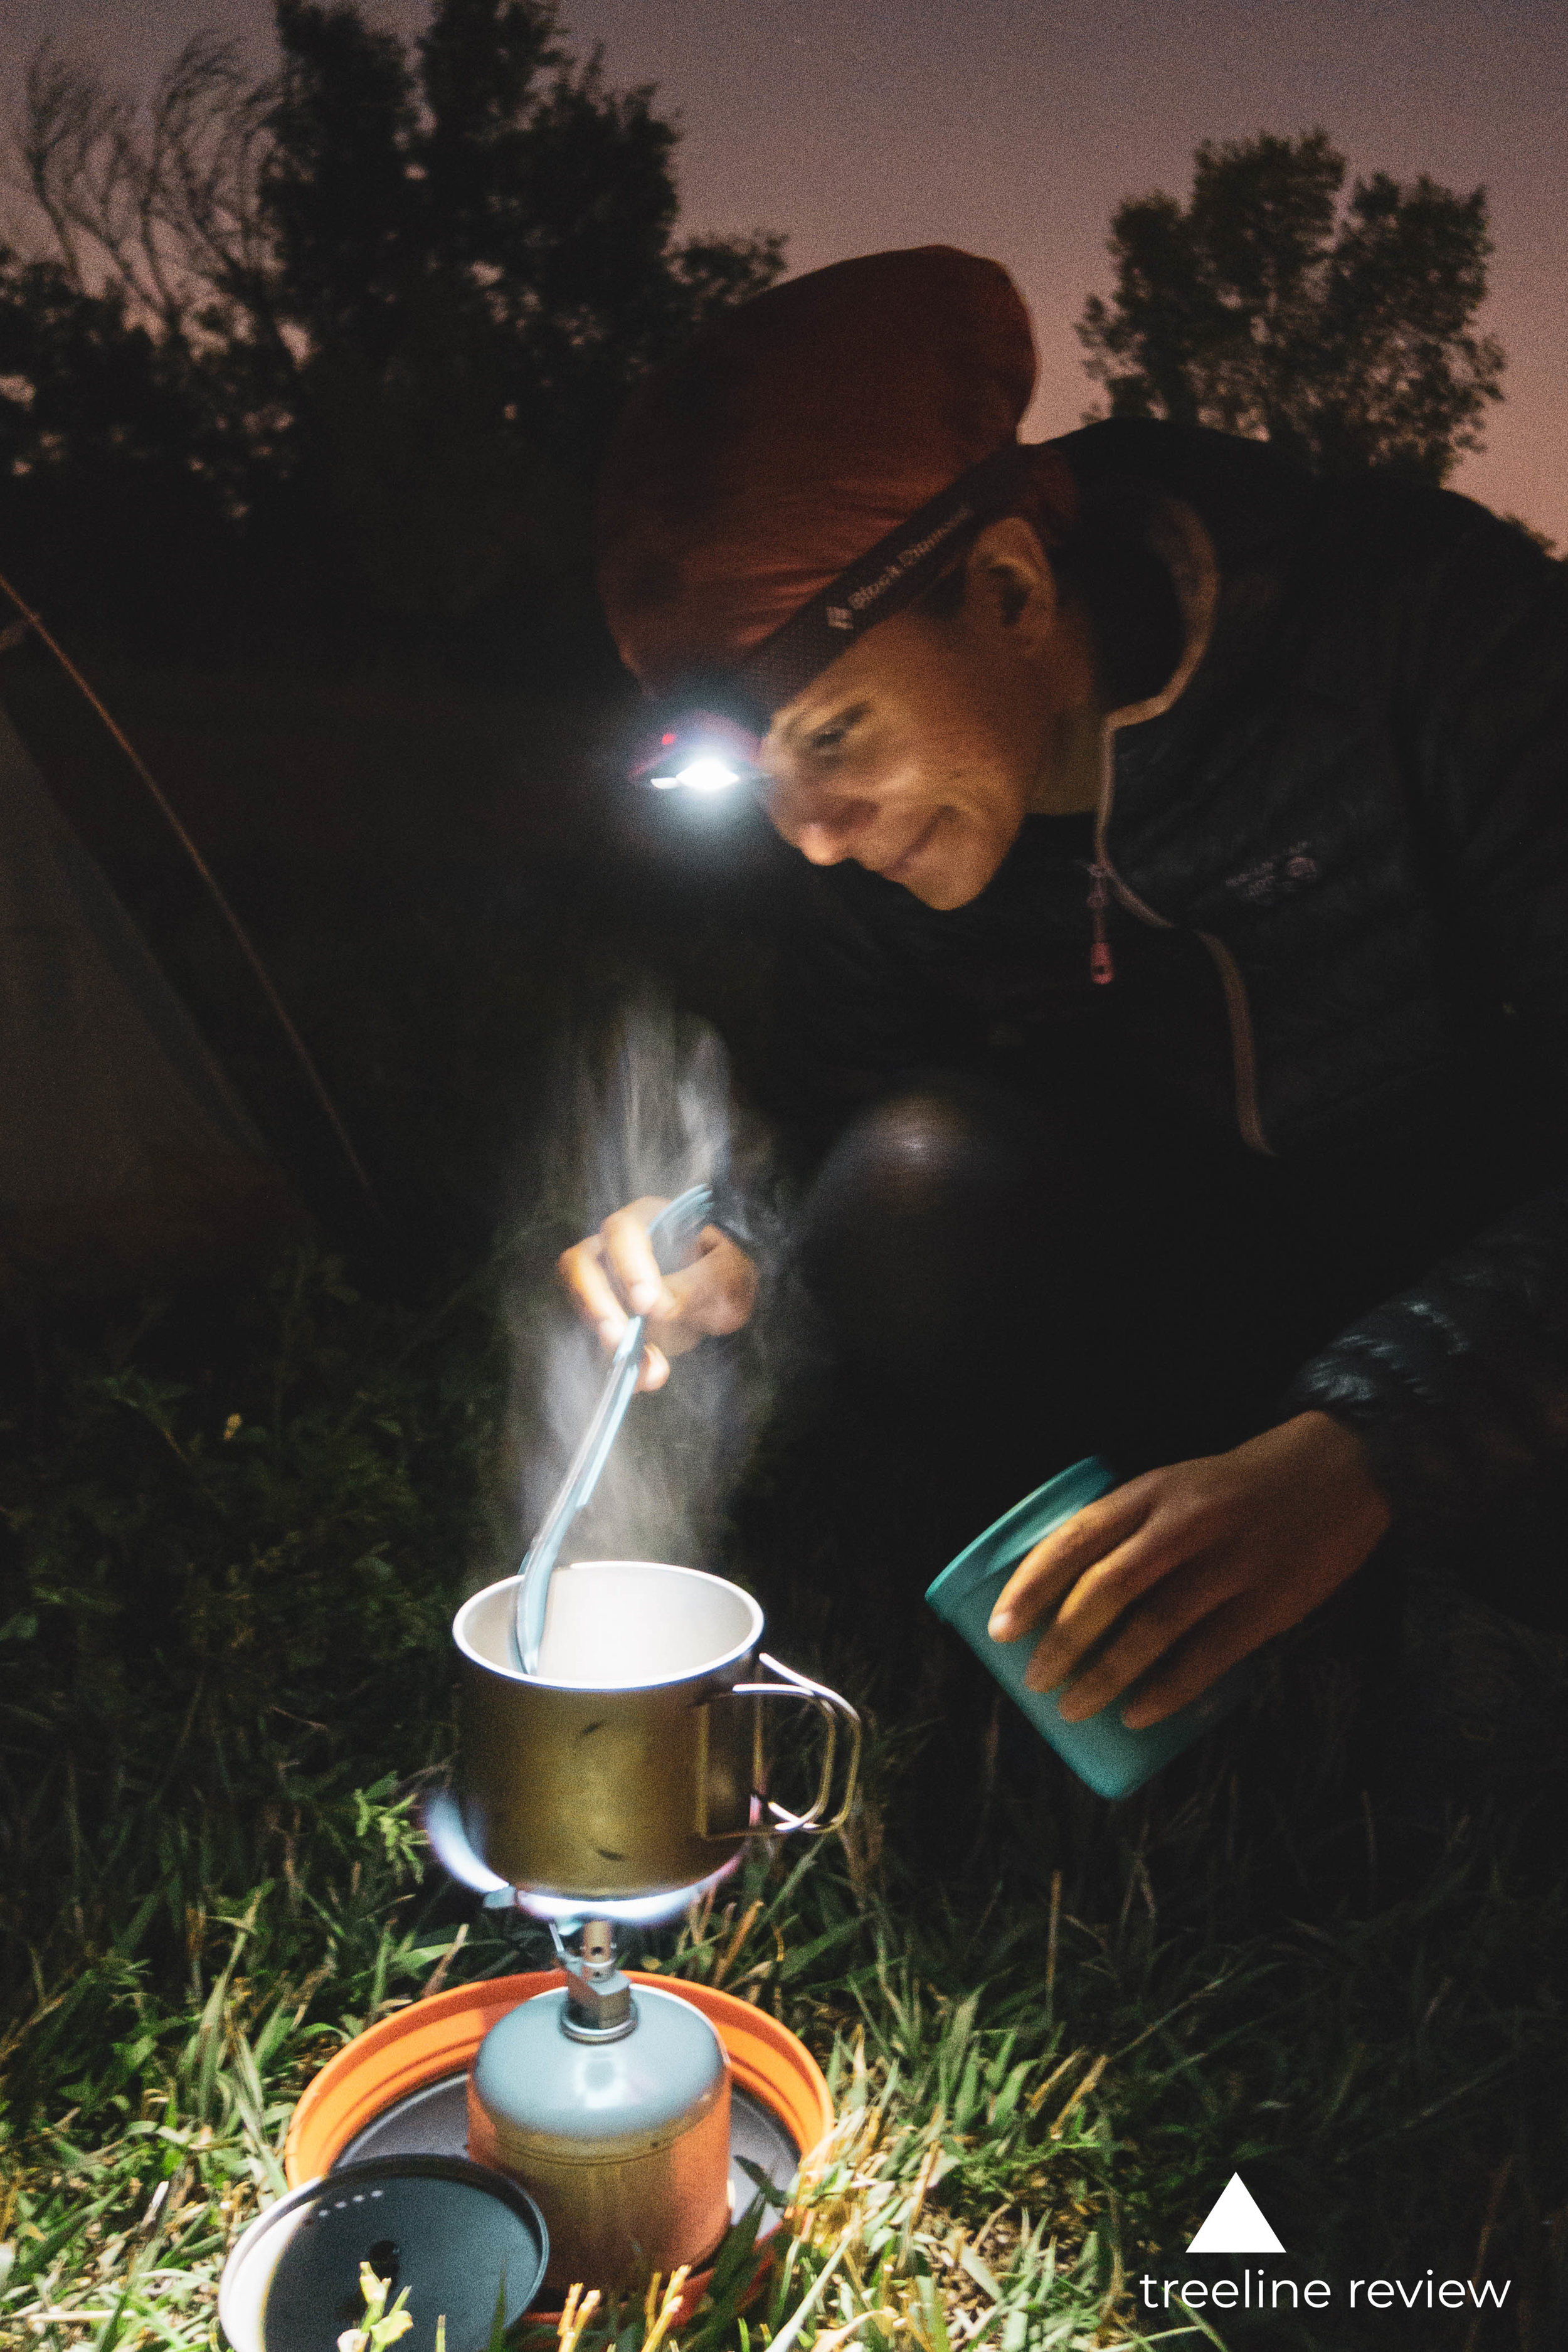 What makes a great headlamp? -